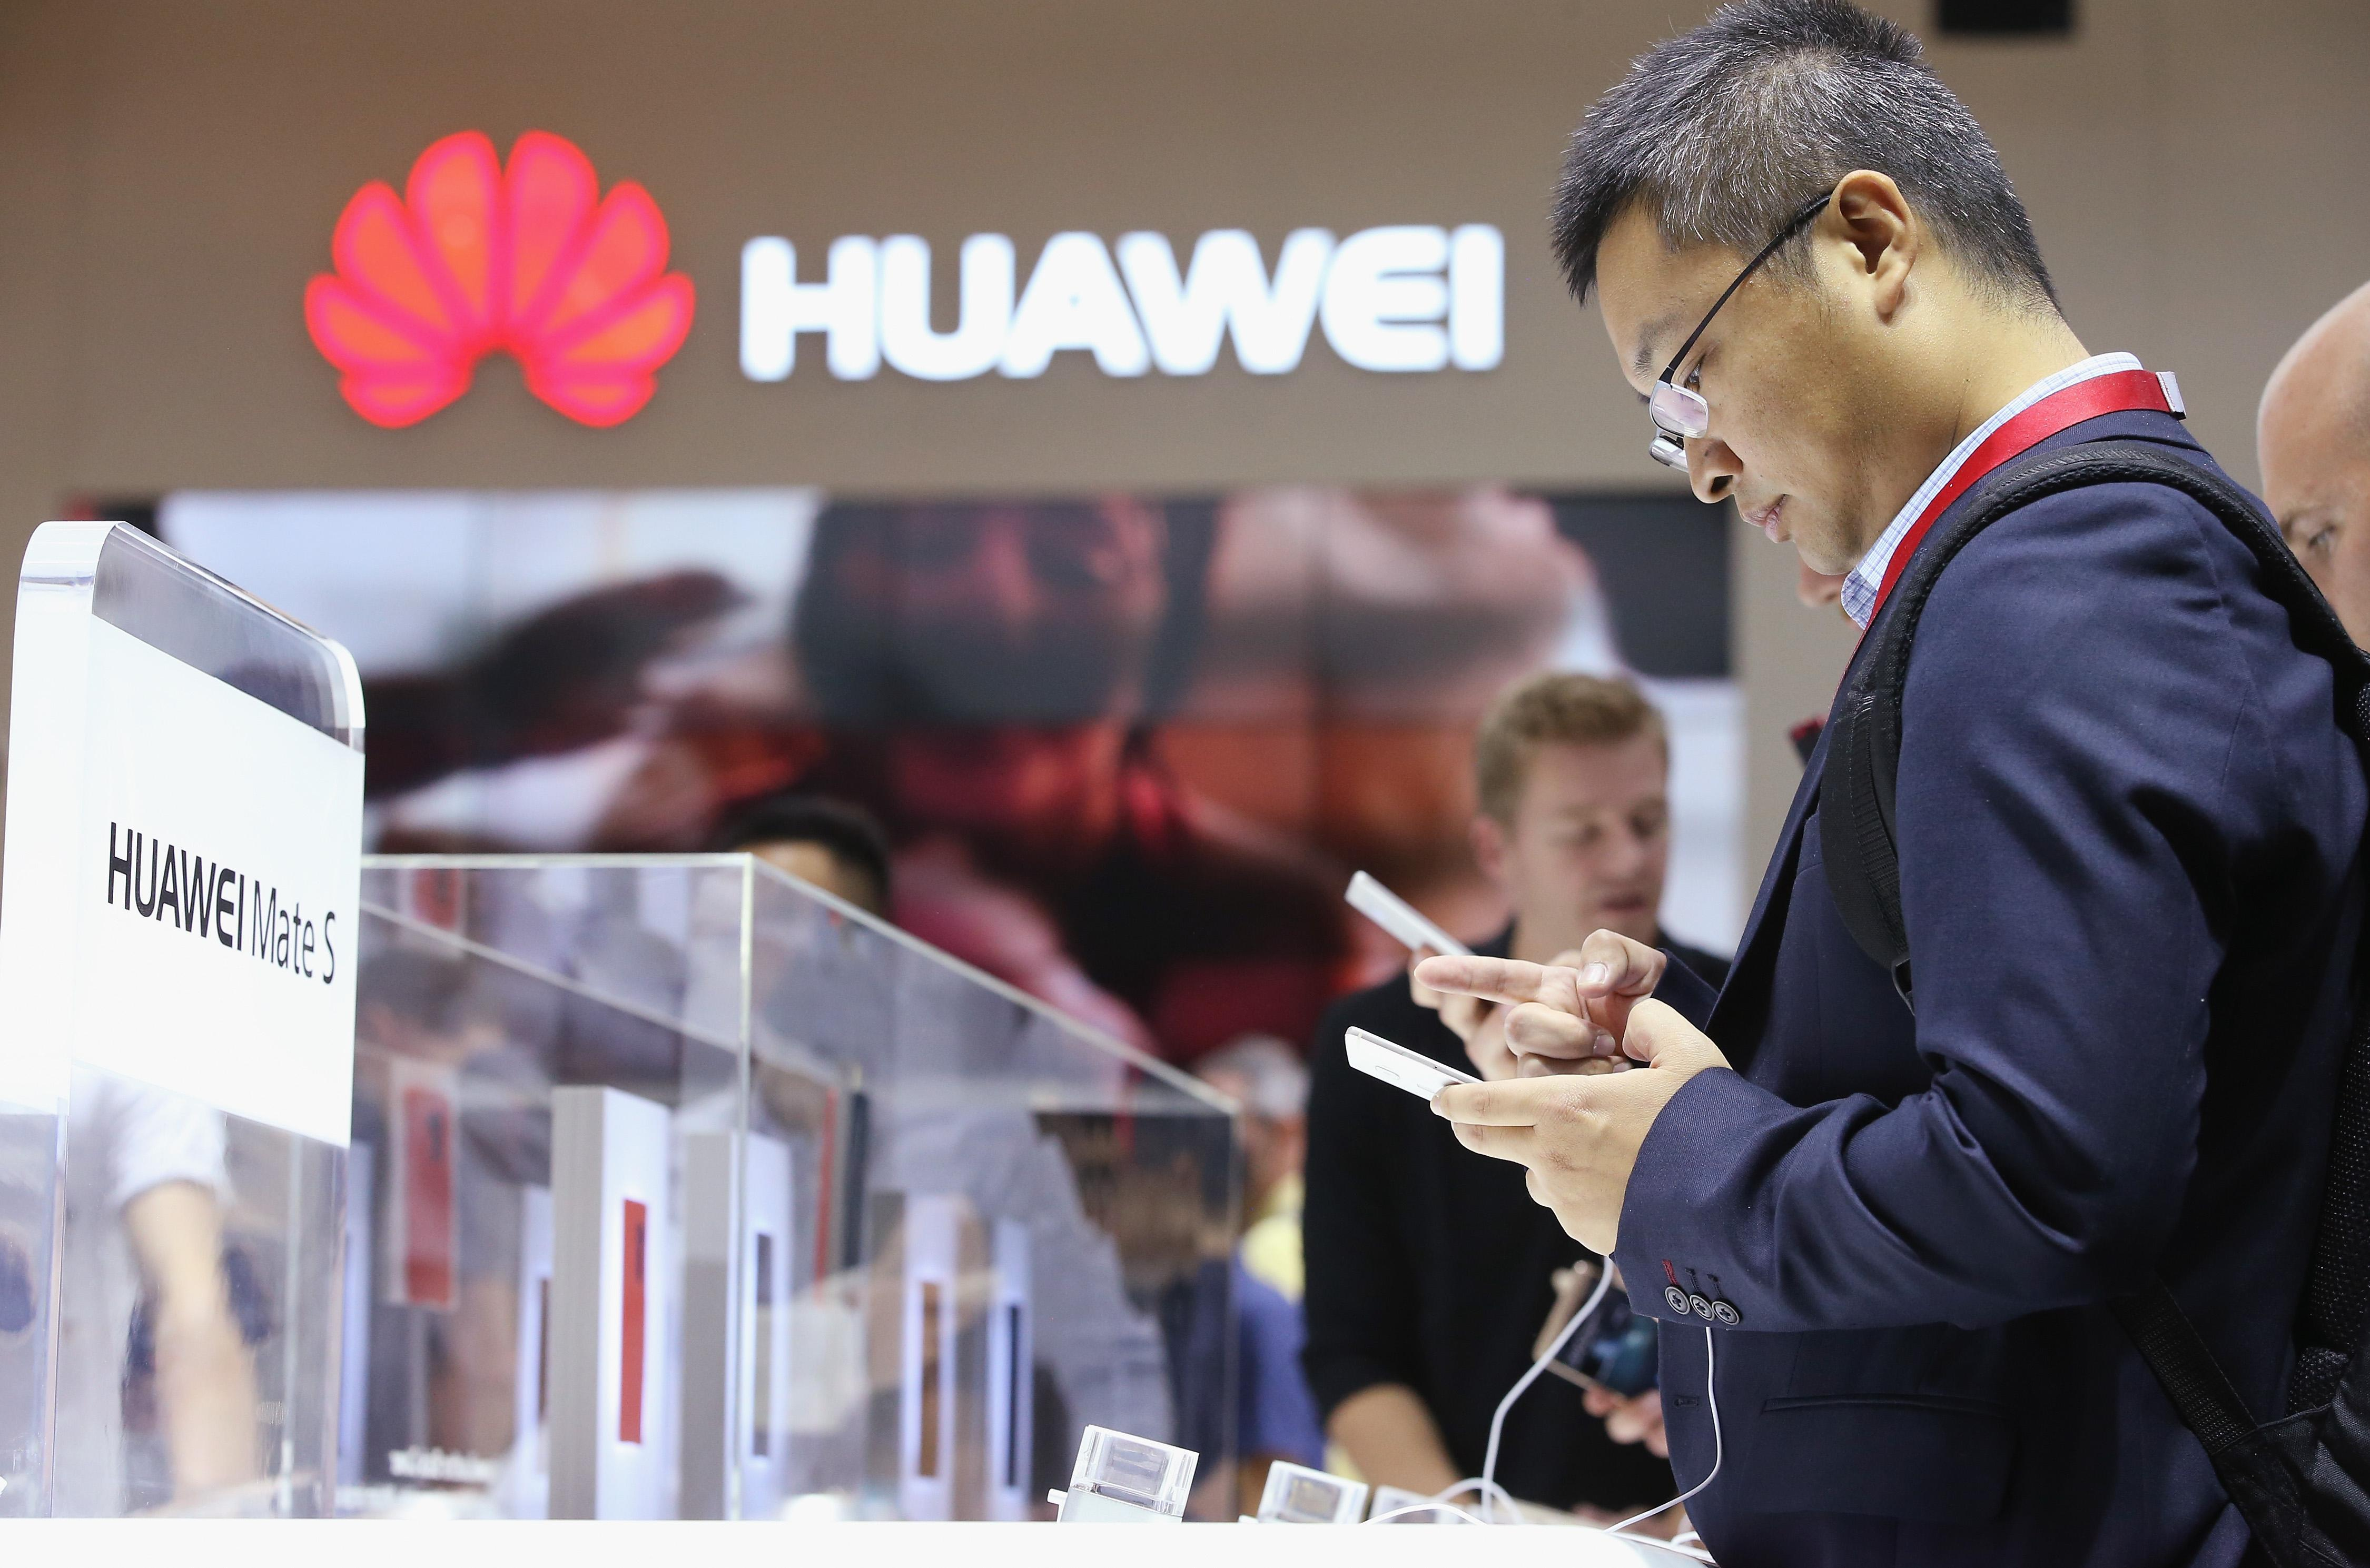 Huawei Profits Rise on Strong Smartphone Sales